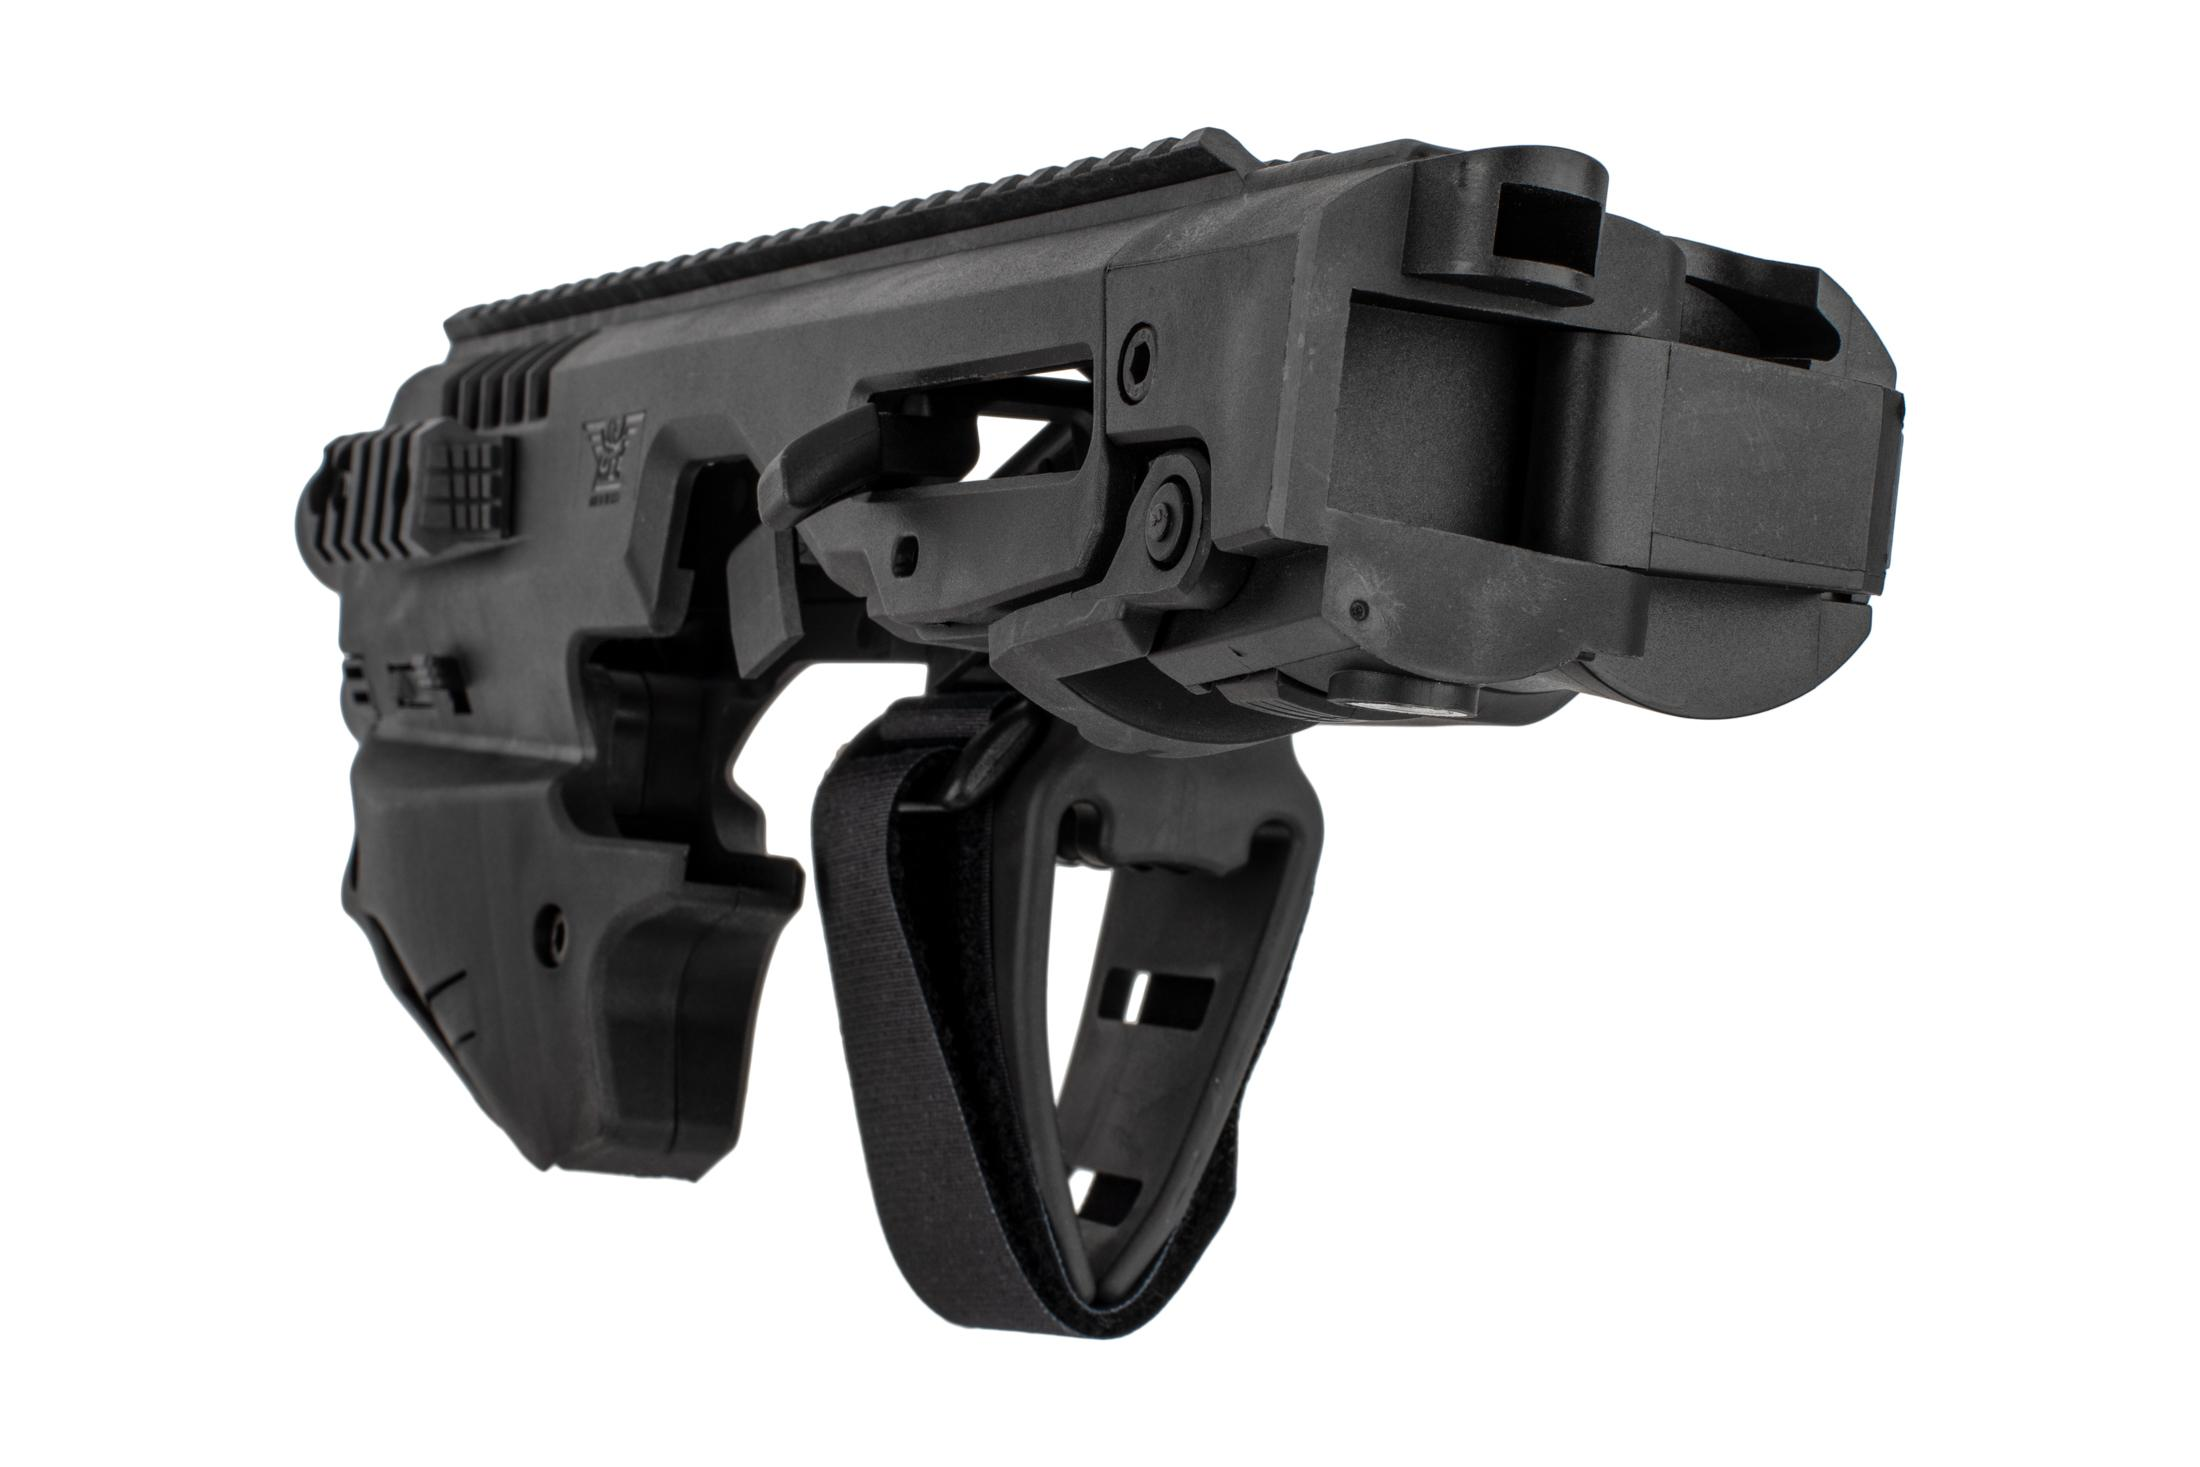 Command Arms Micro Conversion Kit for Glocks offers a side folding long stabilizer